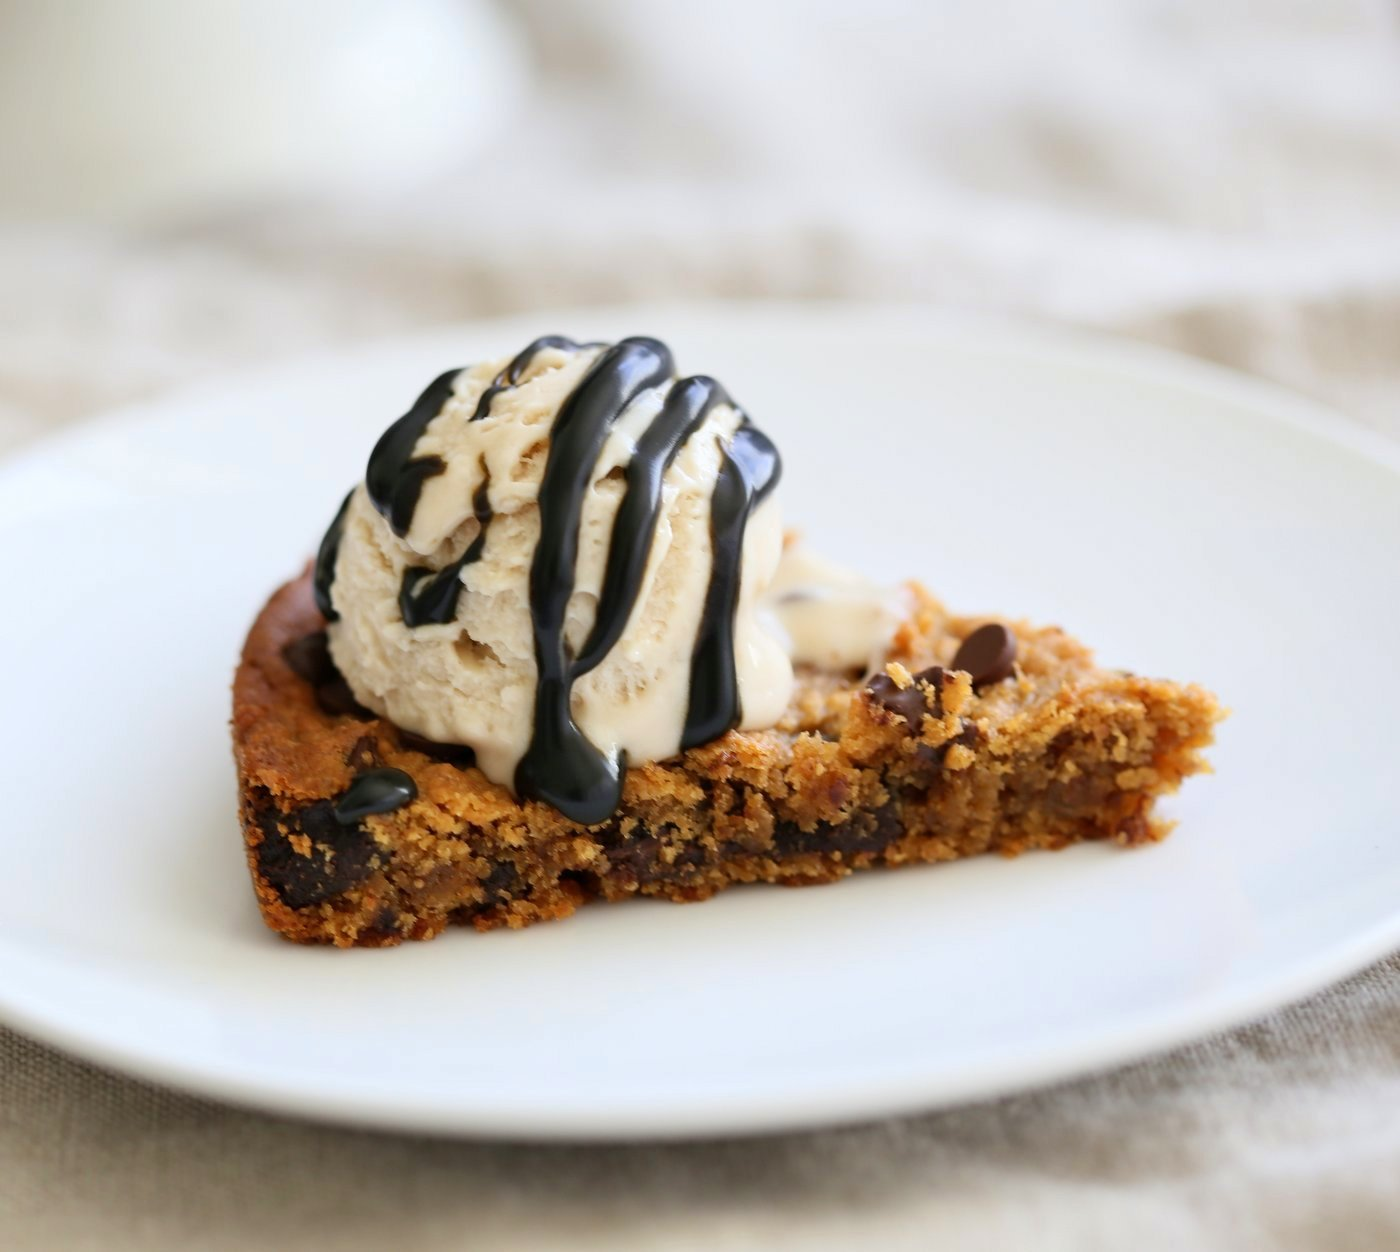 Peanut Butter Chickpea Cookie Pie. Chickpea Peanut Butter Cookies. Deep dish Cookie Pie. Fudgy Chocolate Chip Chickpea Cookie Pie Recipe. Vegan Gluten-free Soy-free Recipe | VeganRicha.com